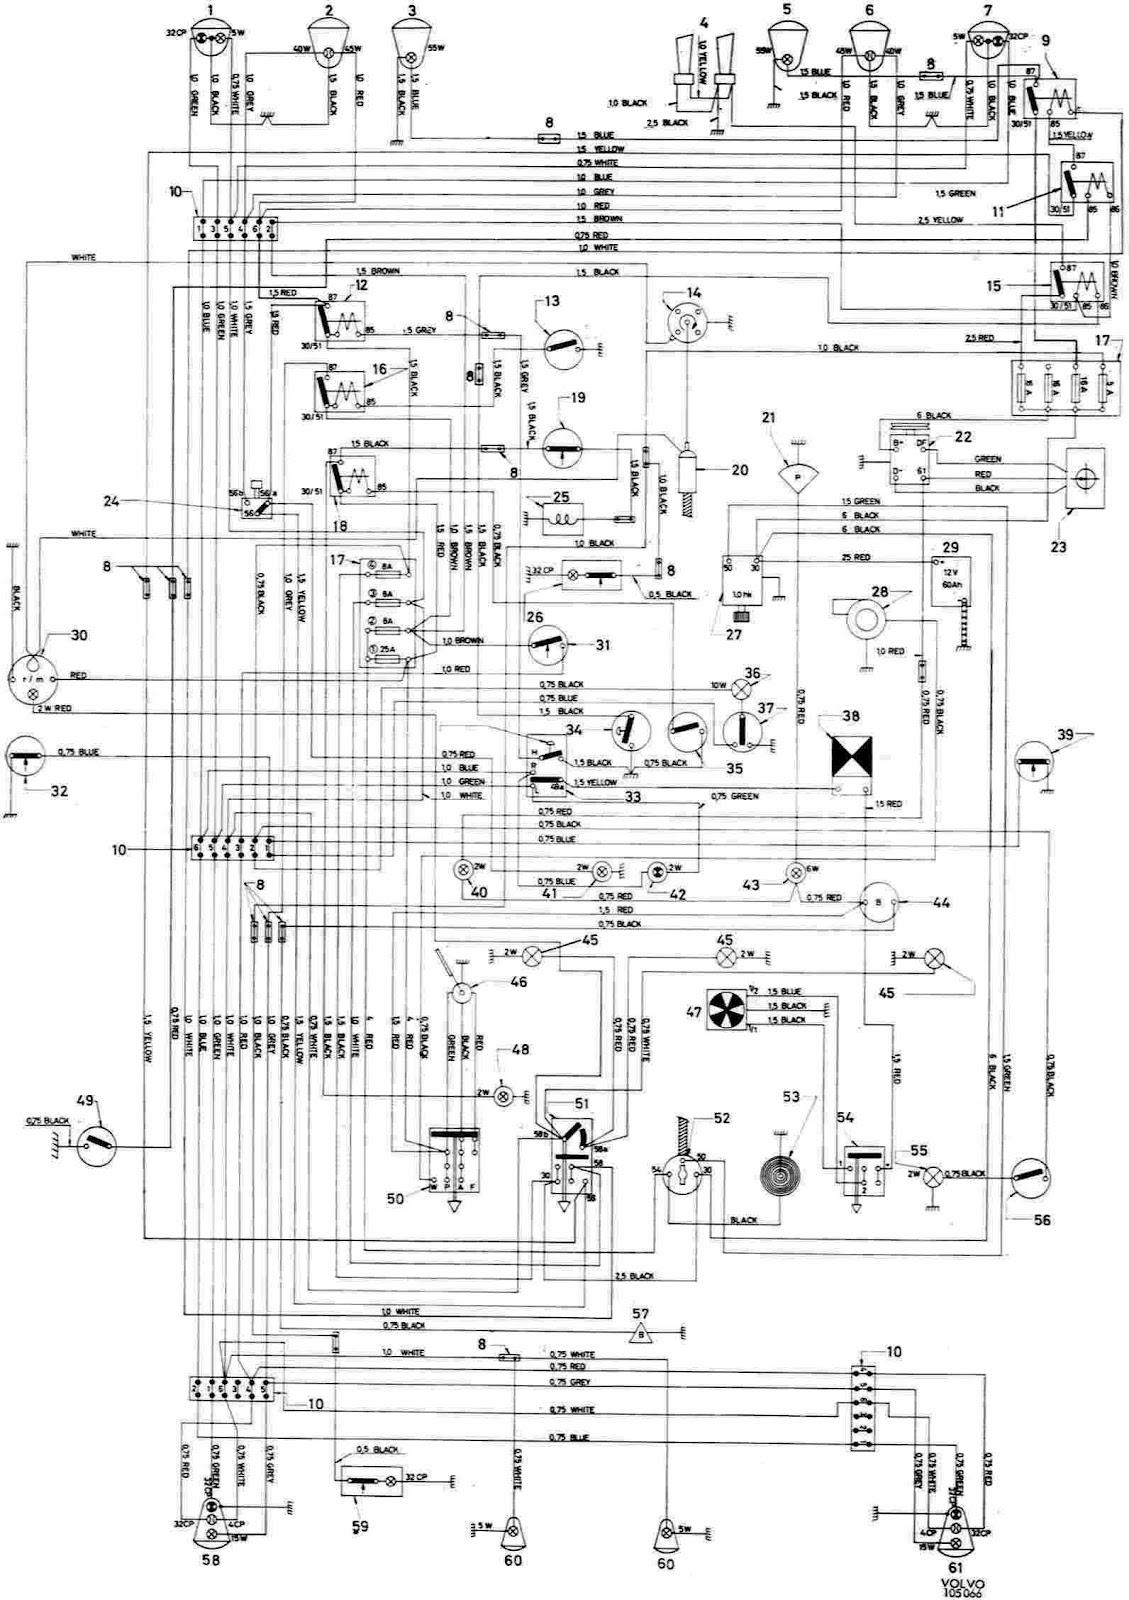 Volvo+123+GT+Complete+Wiring+Diagram hu 613 wiring diagram boat wiring diagram \u2022 wiring diagrams j e46 o2 sensor wiring diagram at gsmx.co